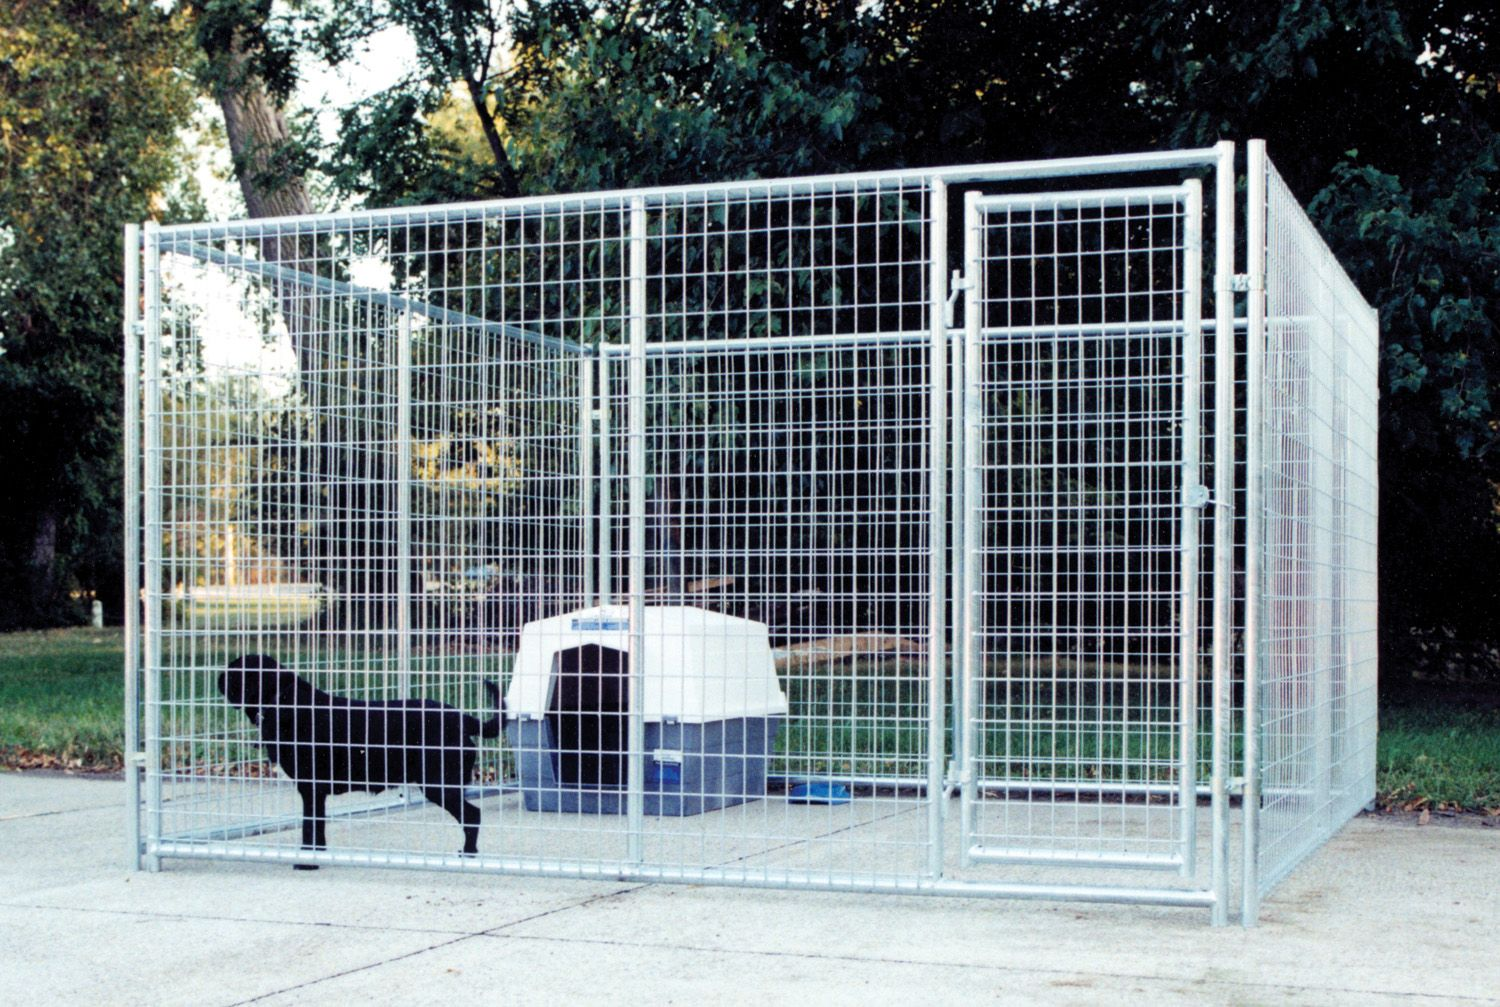 10 X 10 Complete Kennel Magnum Kennels Dog Kennel Affenpinscher Dog Kennel